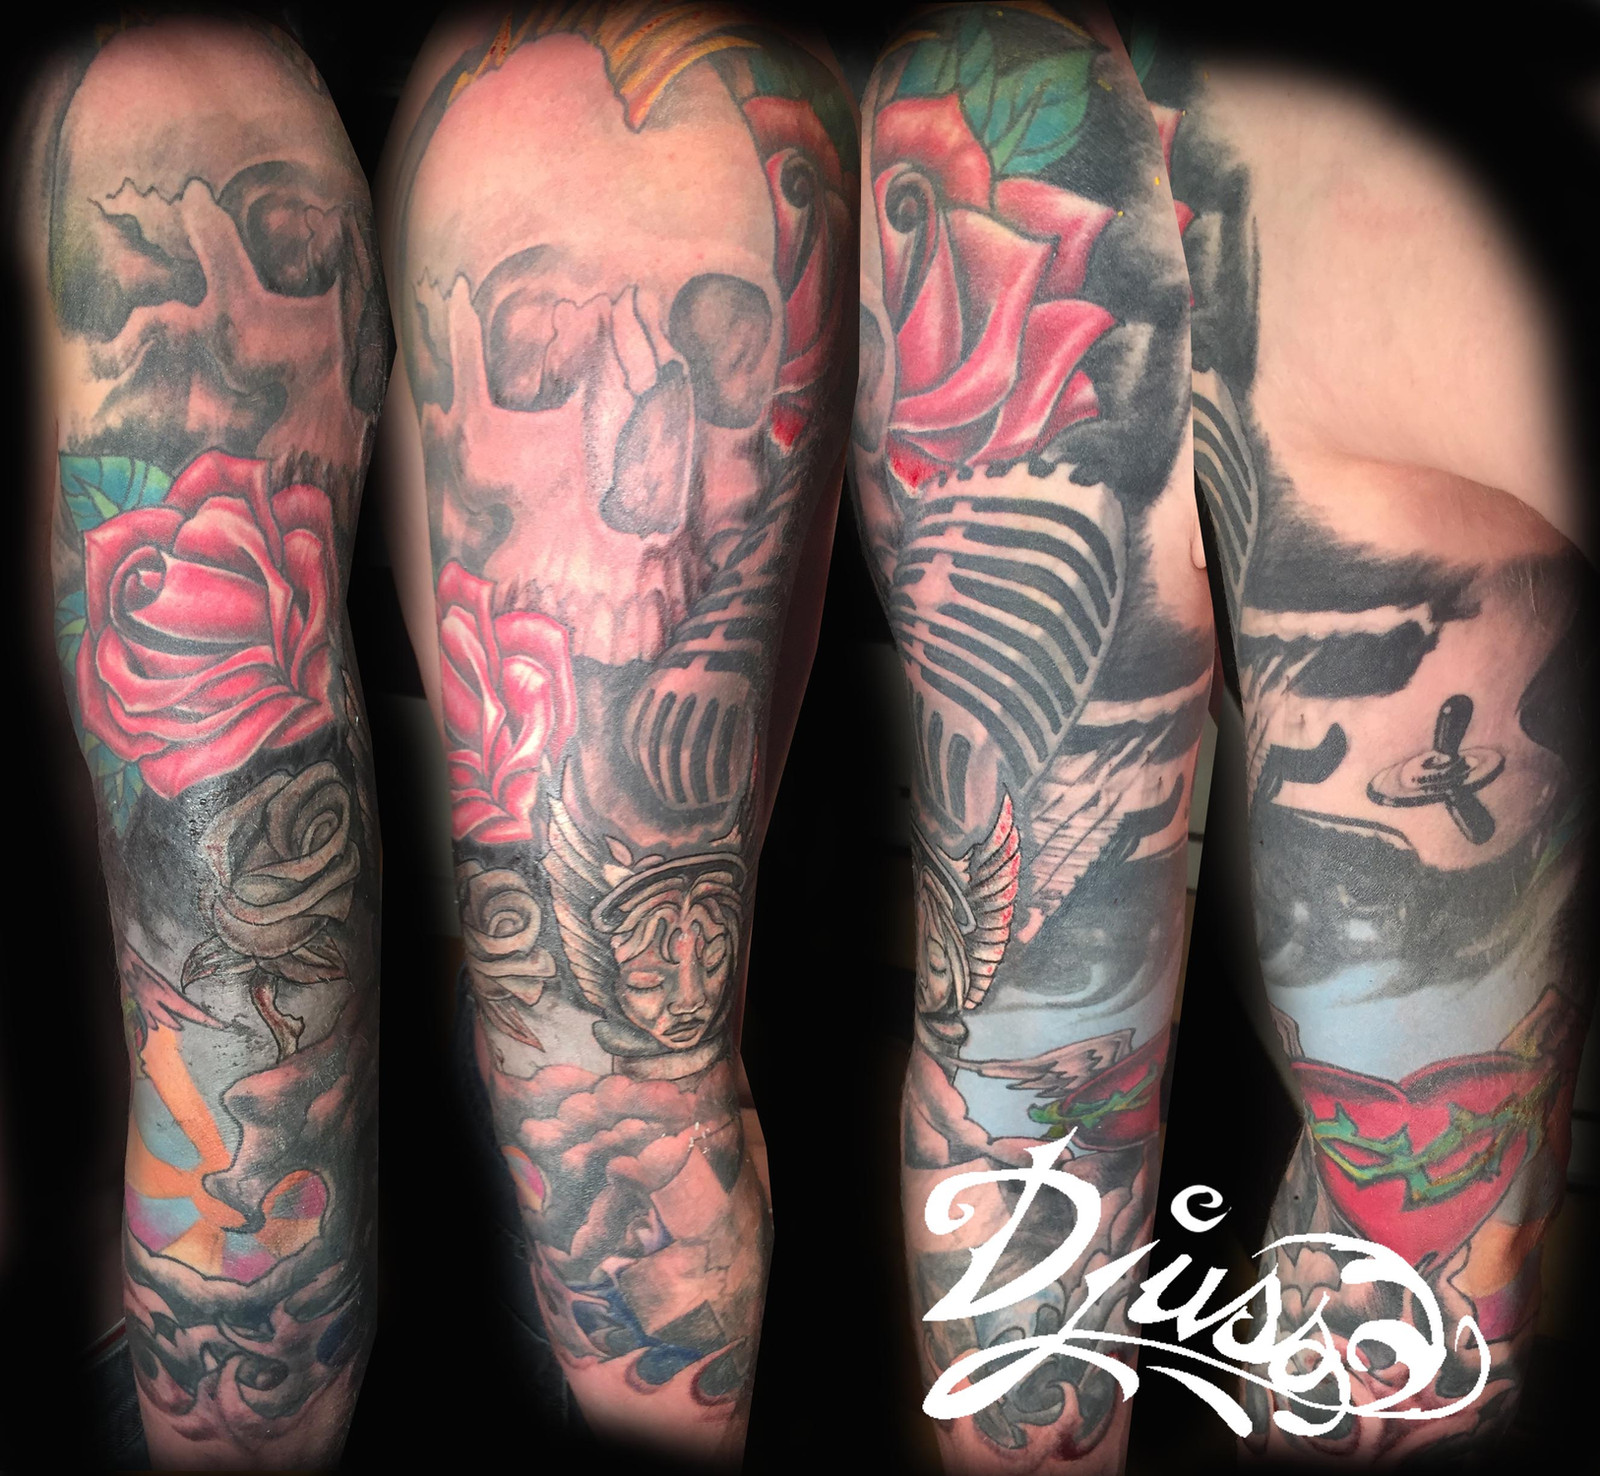 dee5e6cbabe0c Tattoo of a musical sleeve with skull, realistic guitar and old school  microphone. Tattoo